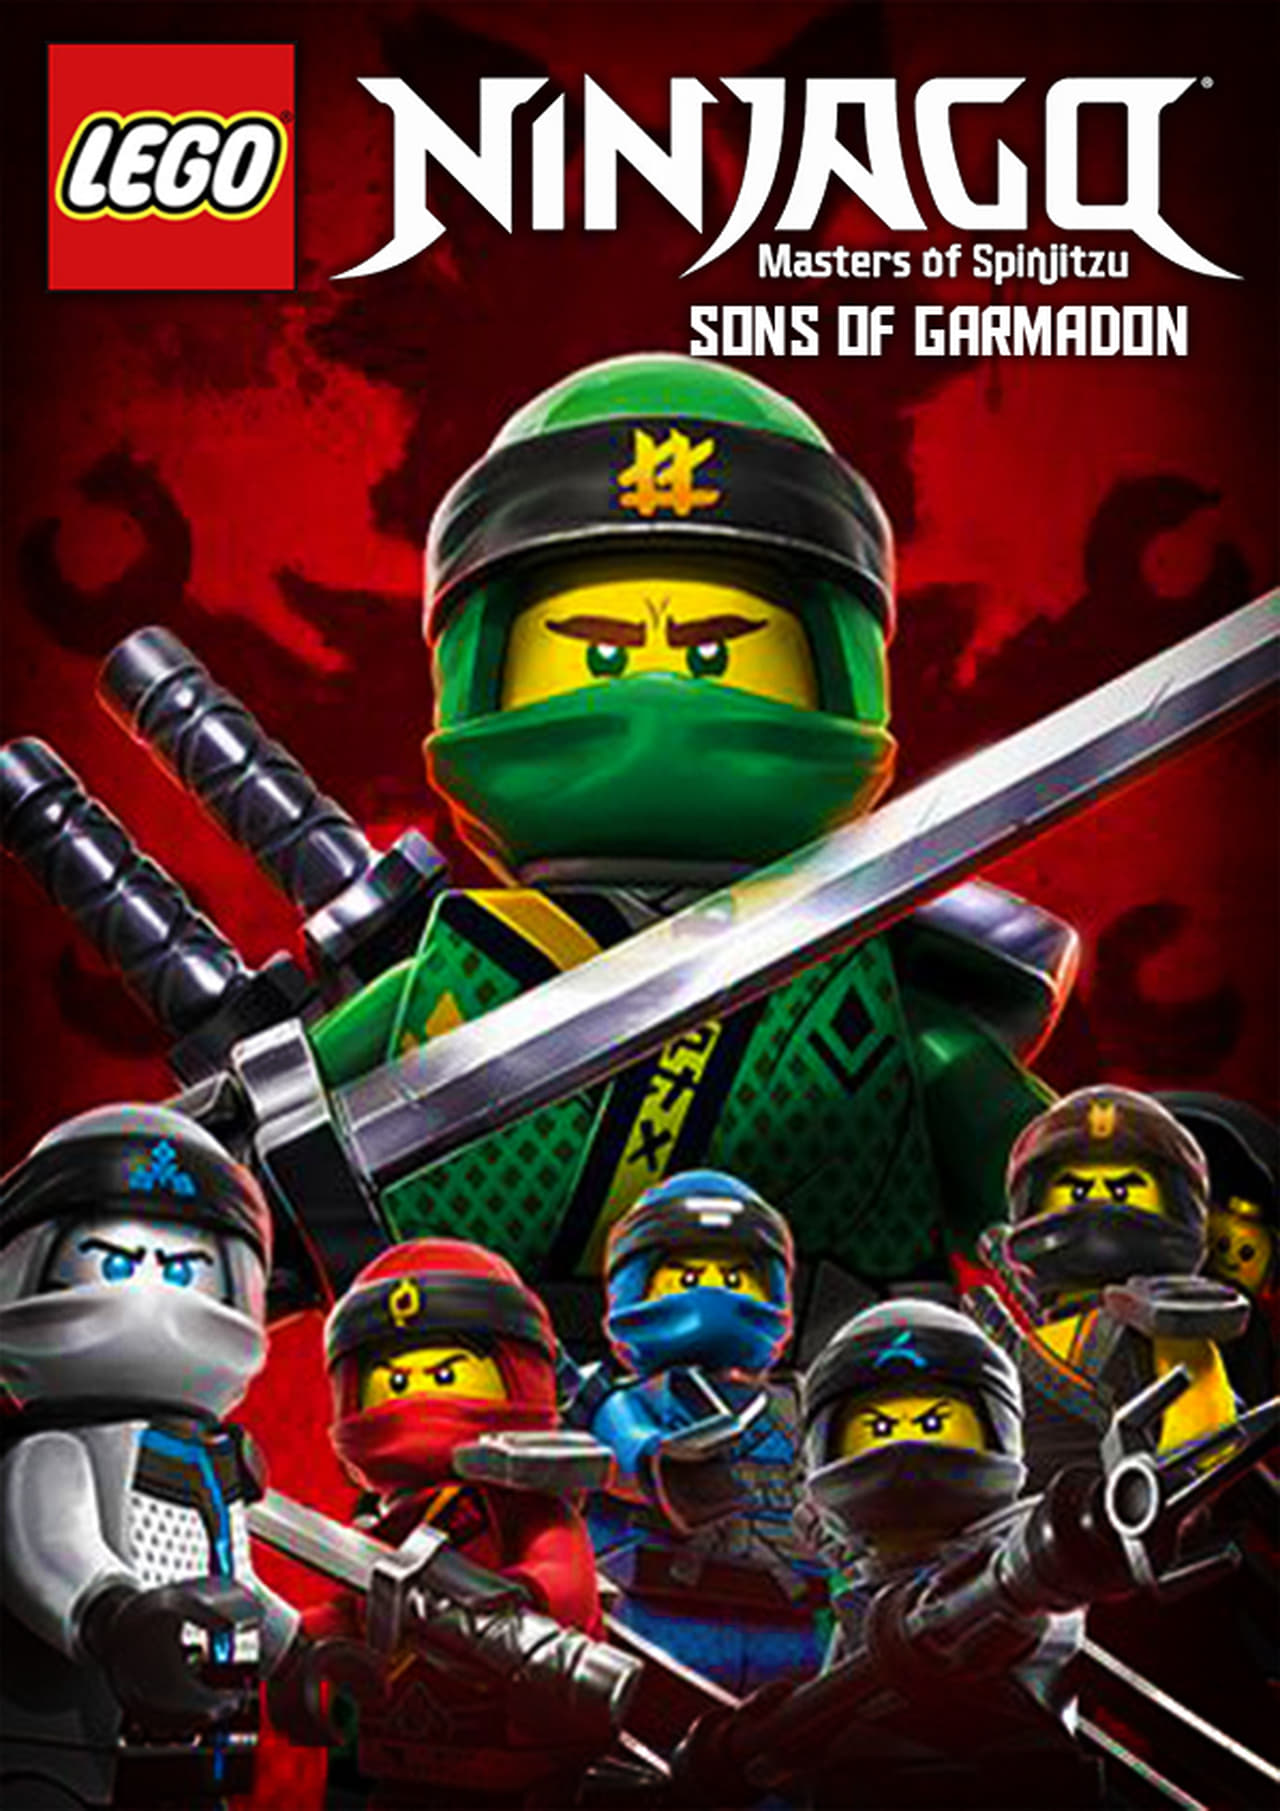 Lego Ninjago: Masters Of Spinjitzu Season 8